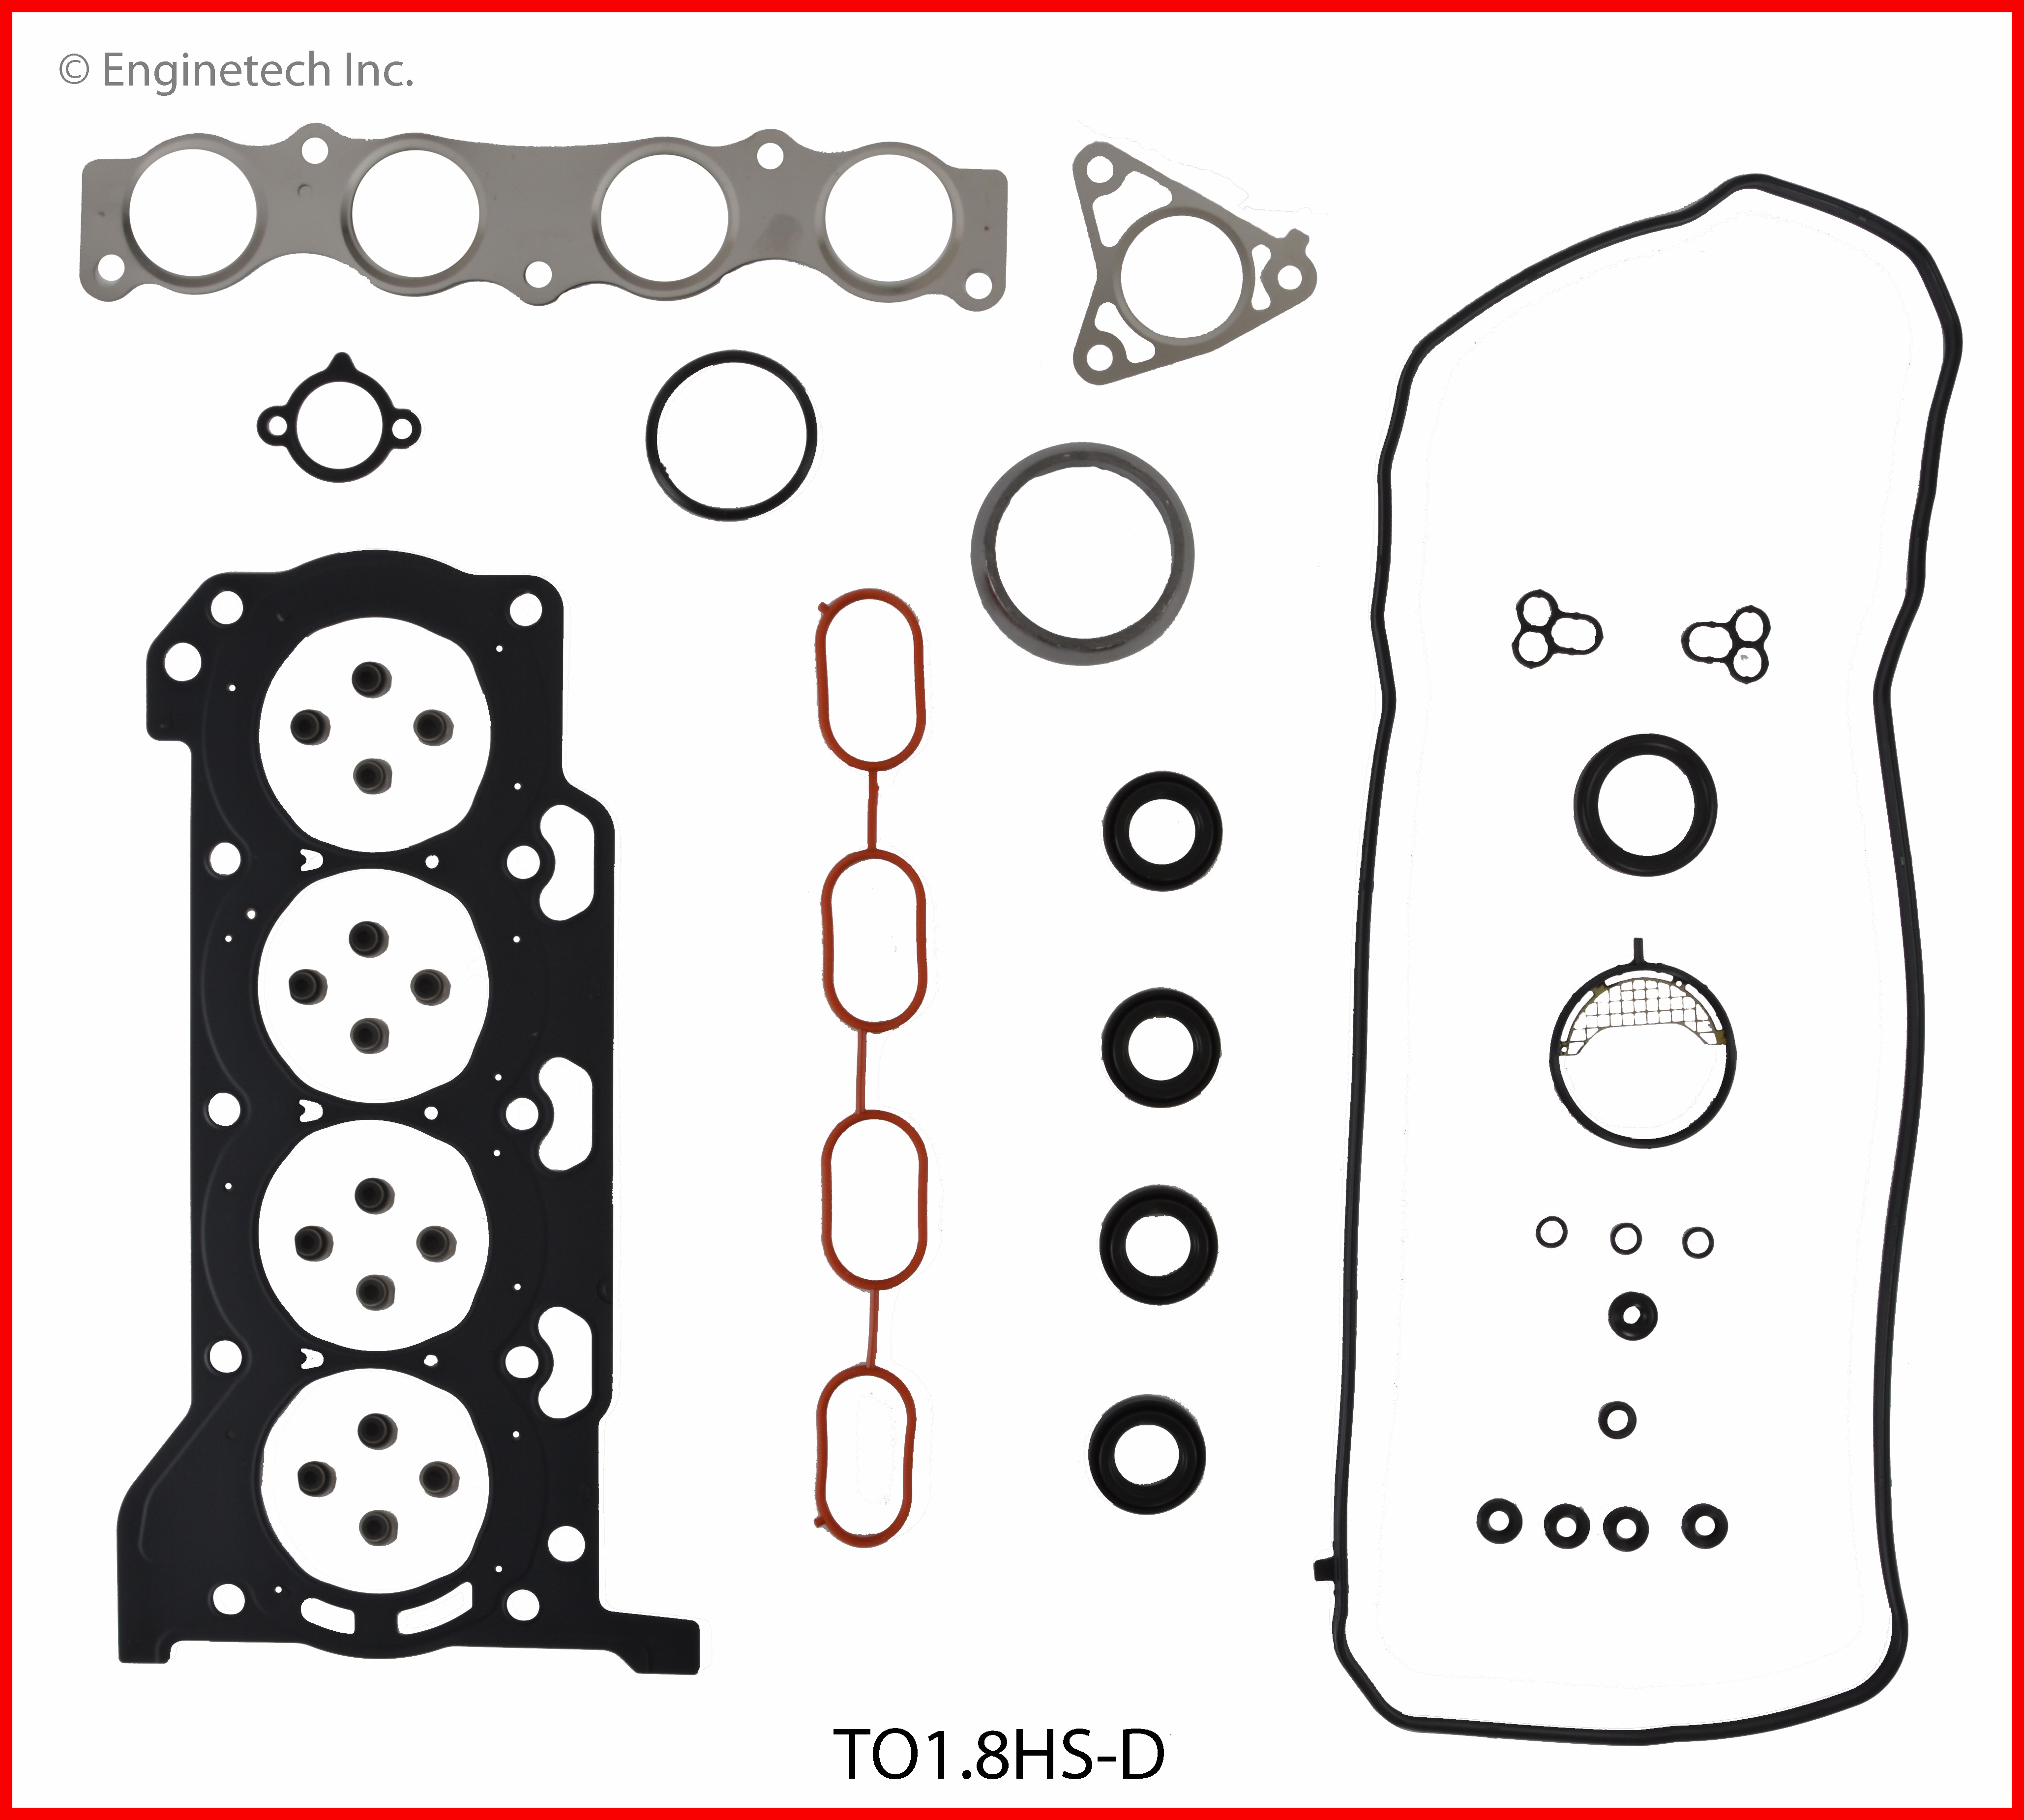 TO1.8HS-D Gasket Set - Head Enginetech